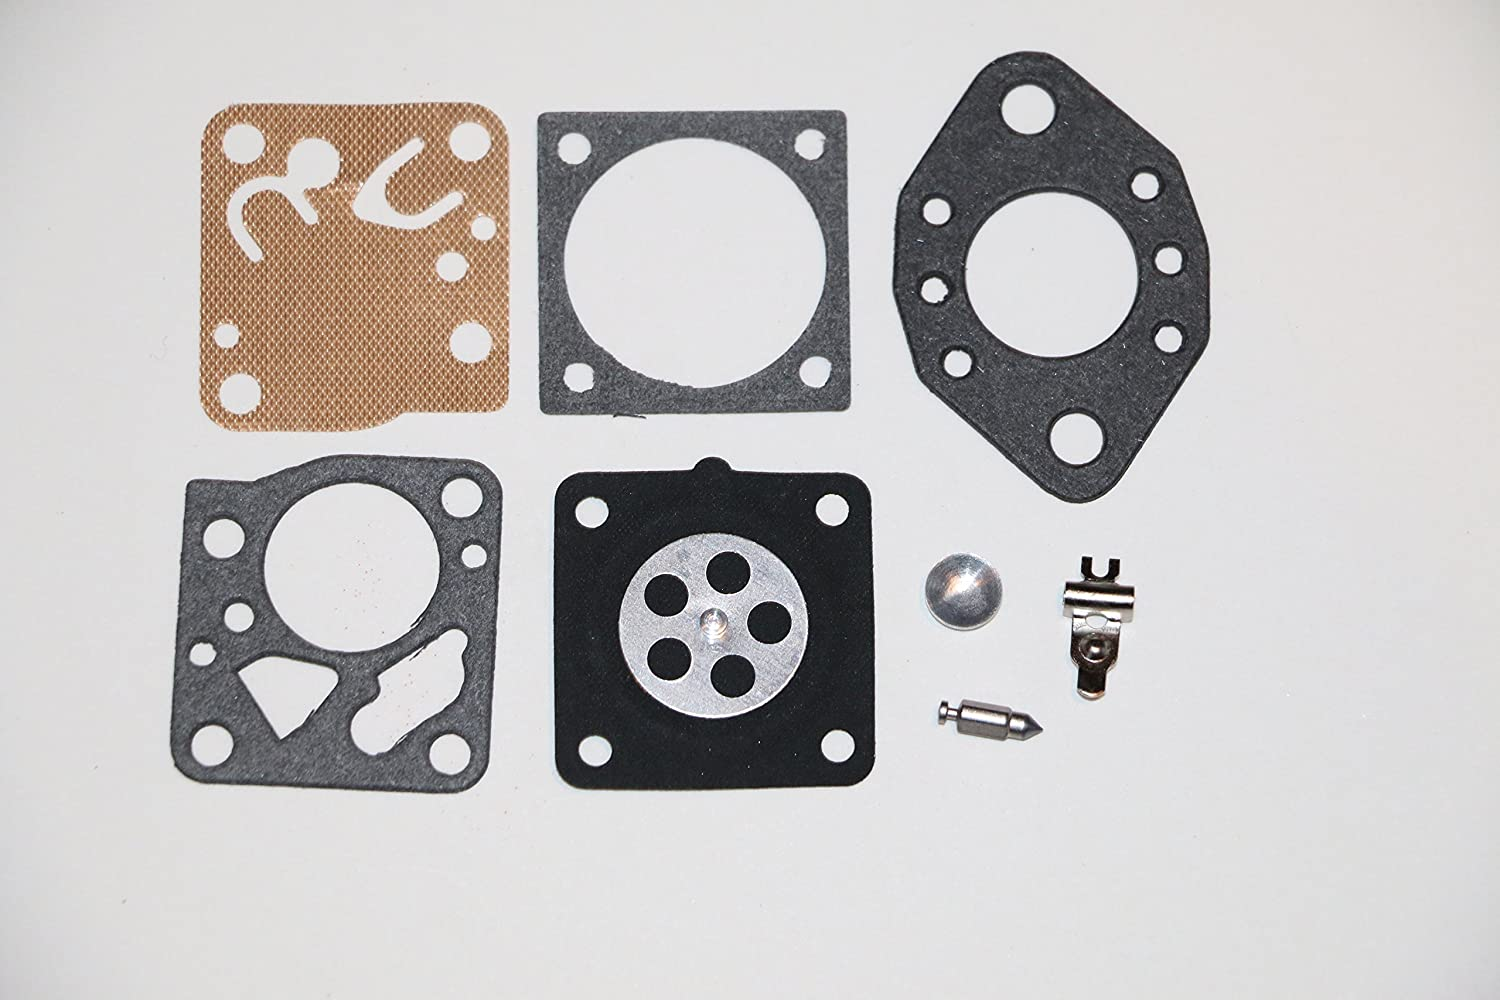 Amazon.com: Carb Carburador Rebuild Kit for Alpina Caster ...